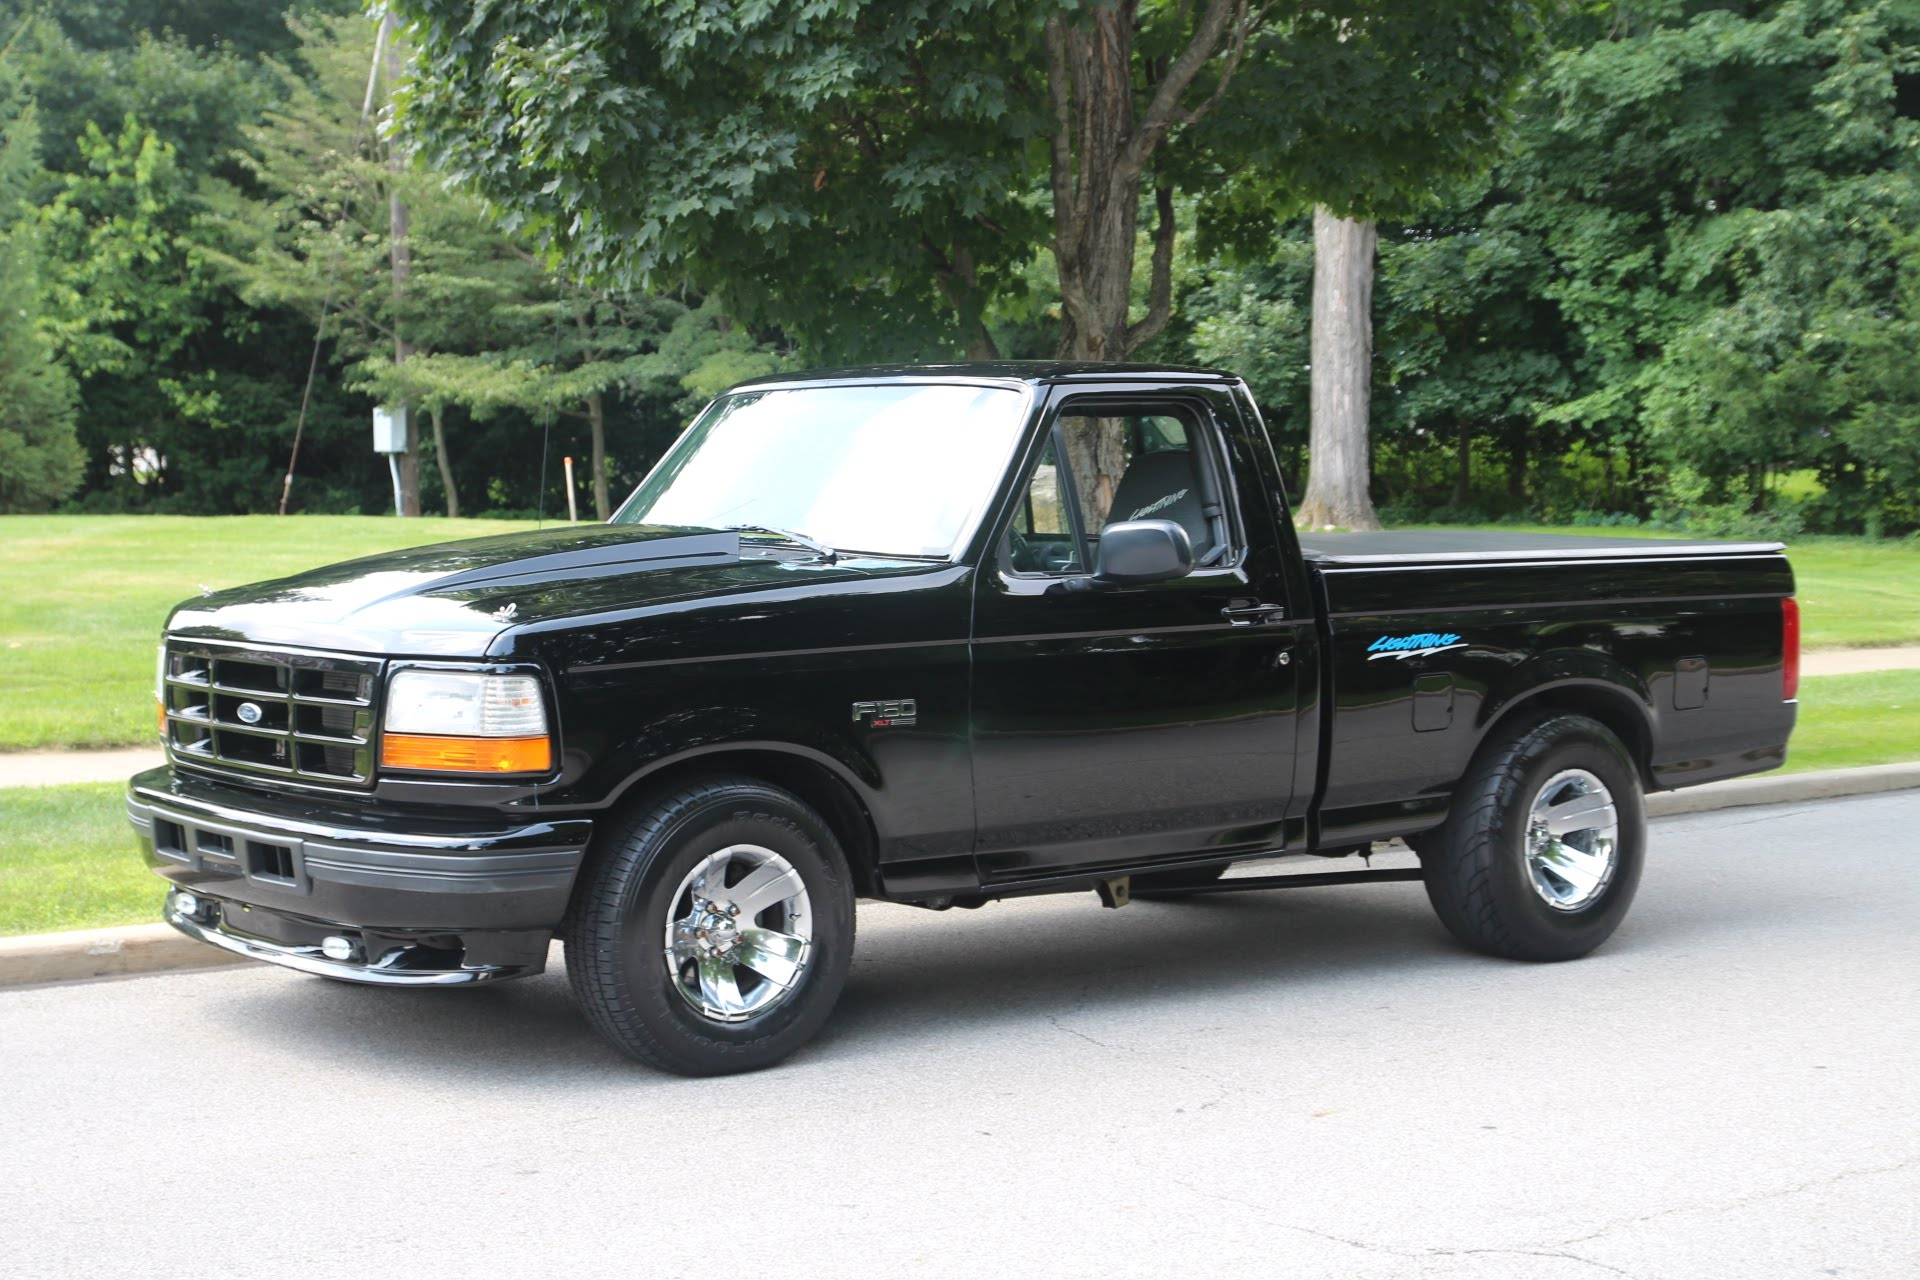 1995 Ford F-150 Svt Lightning #15